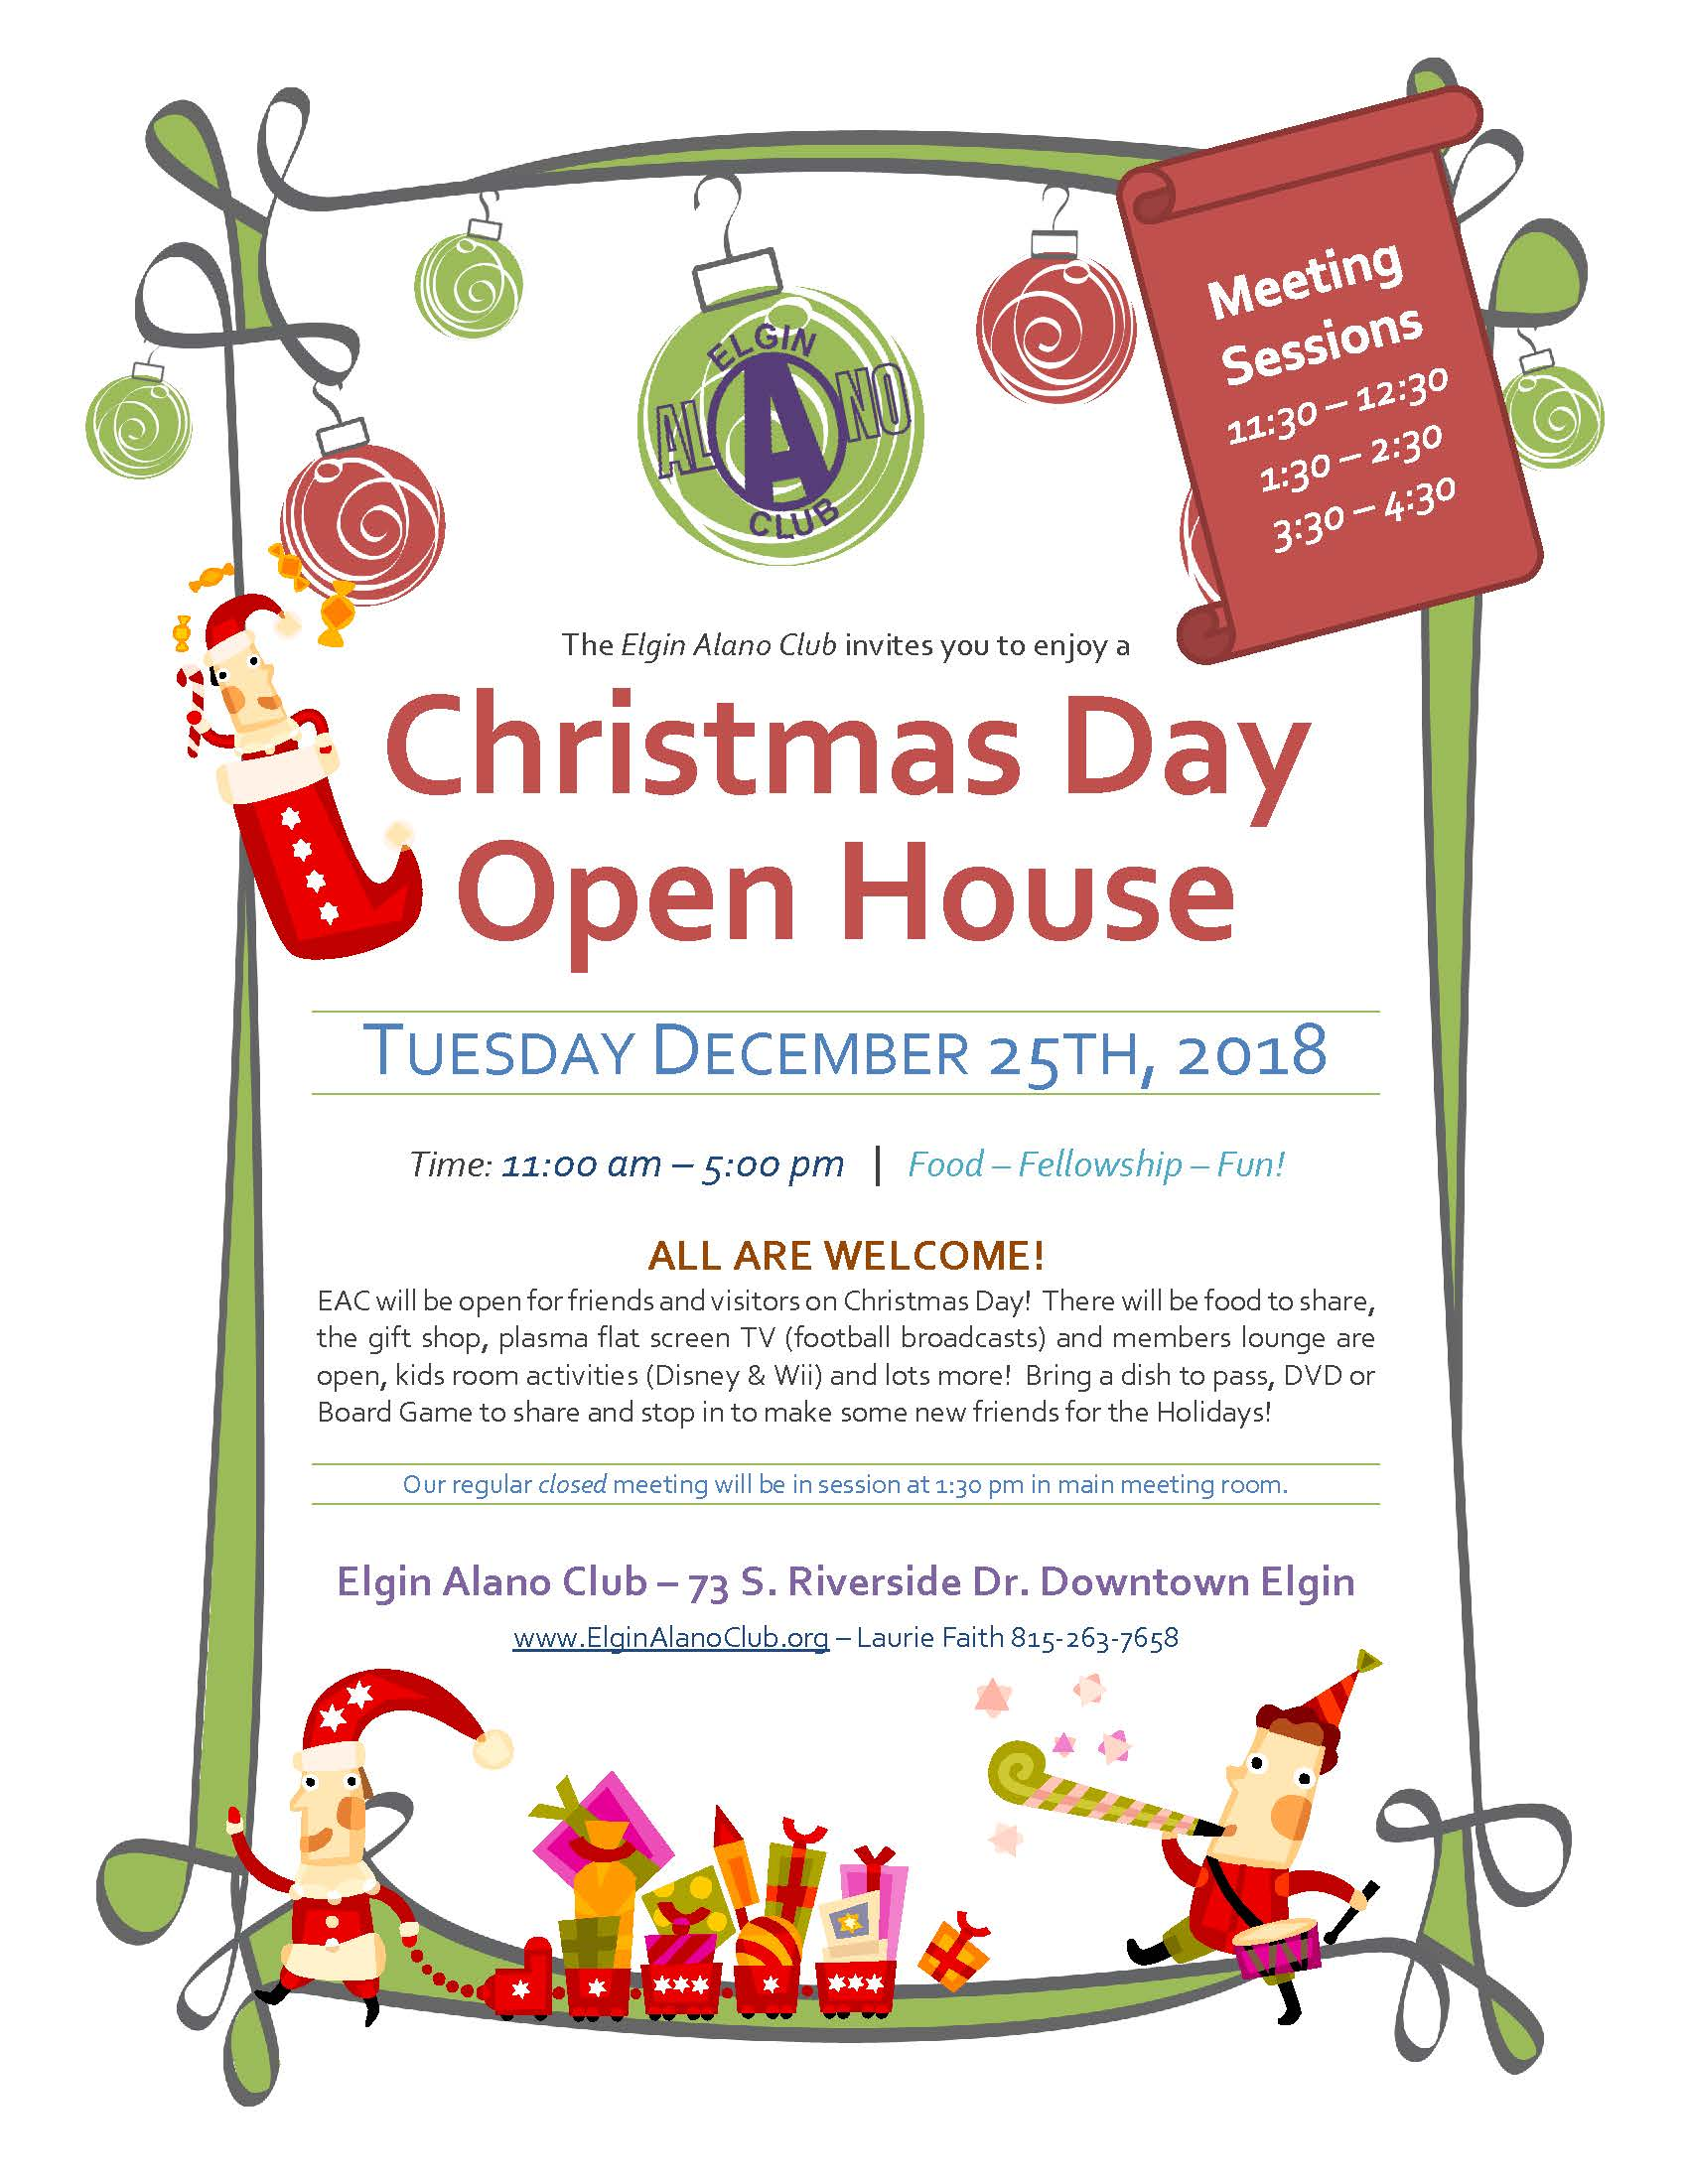 Open House – Elgin Alano Club